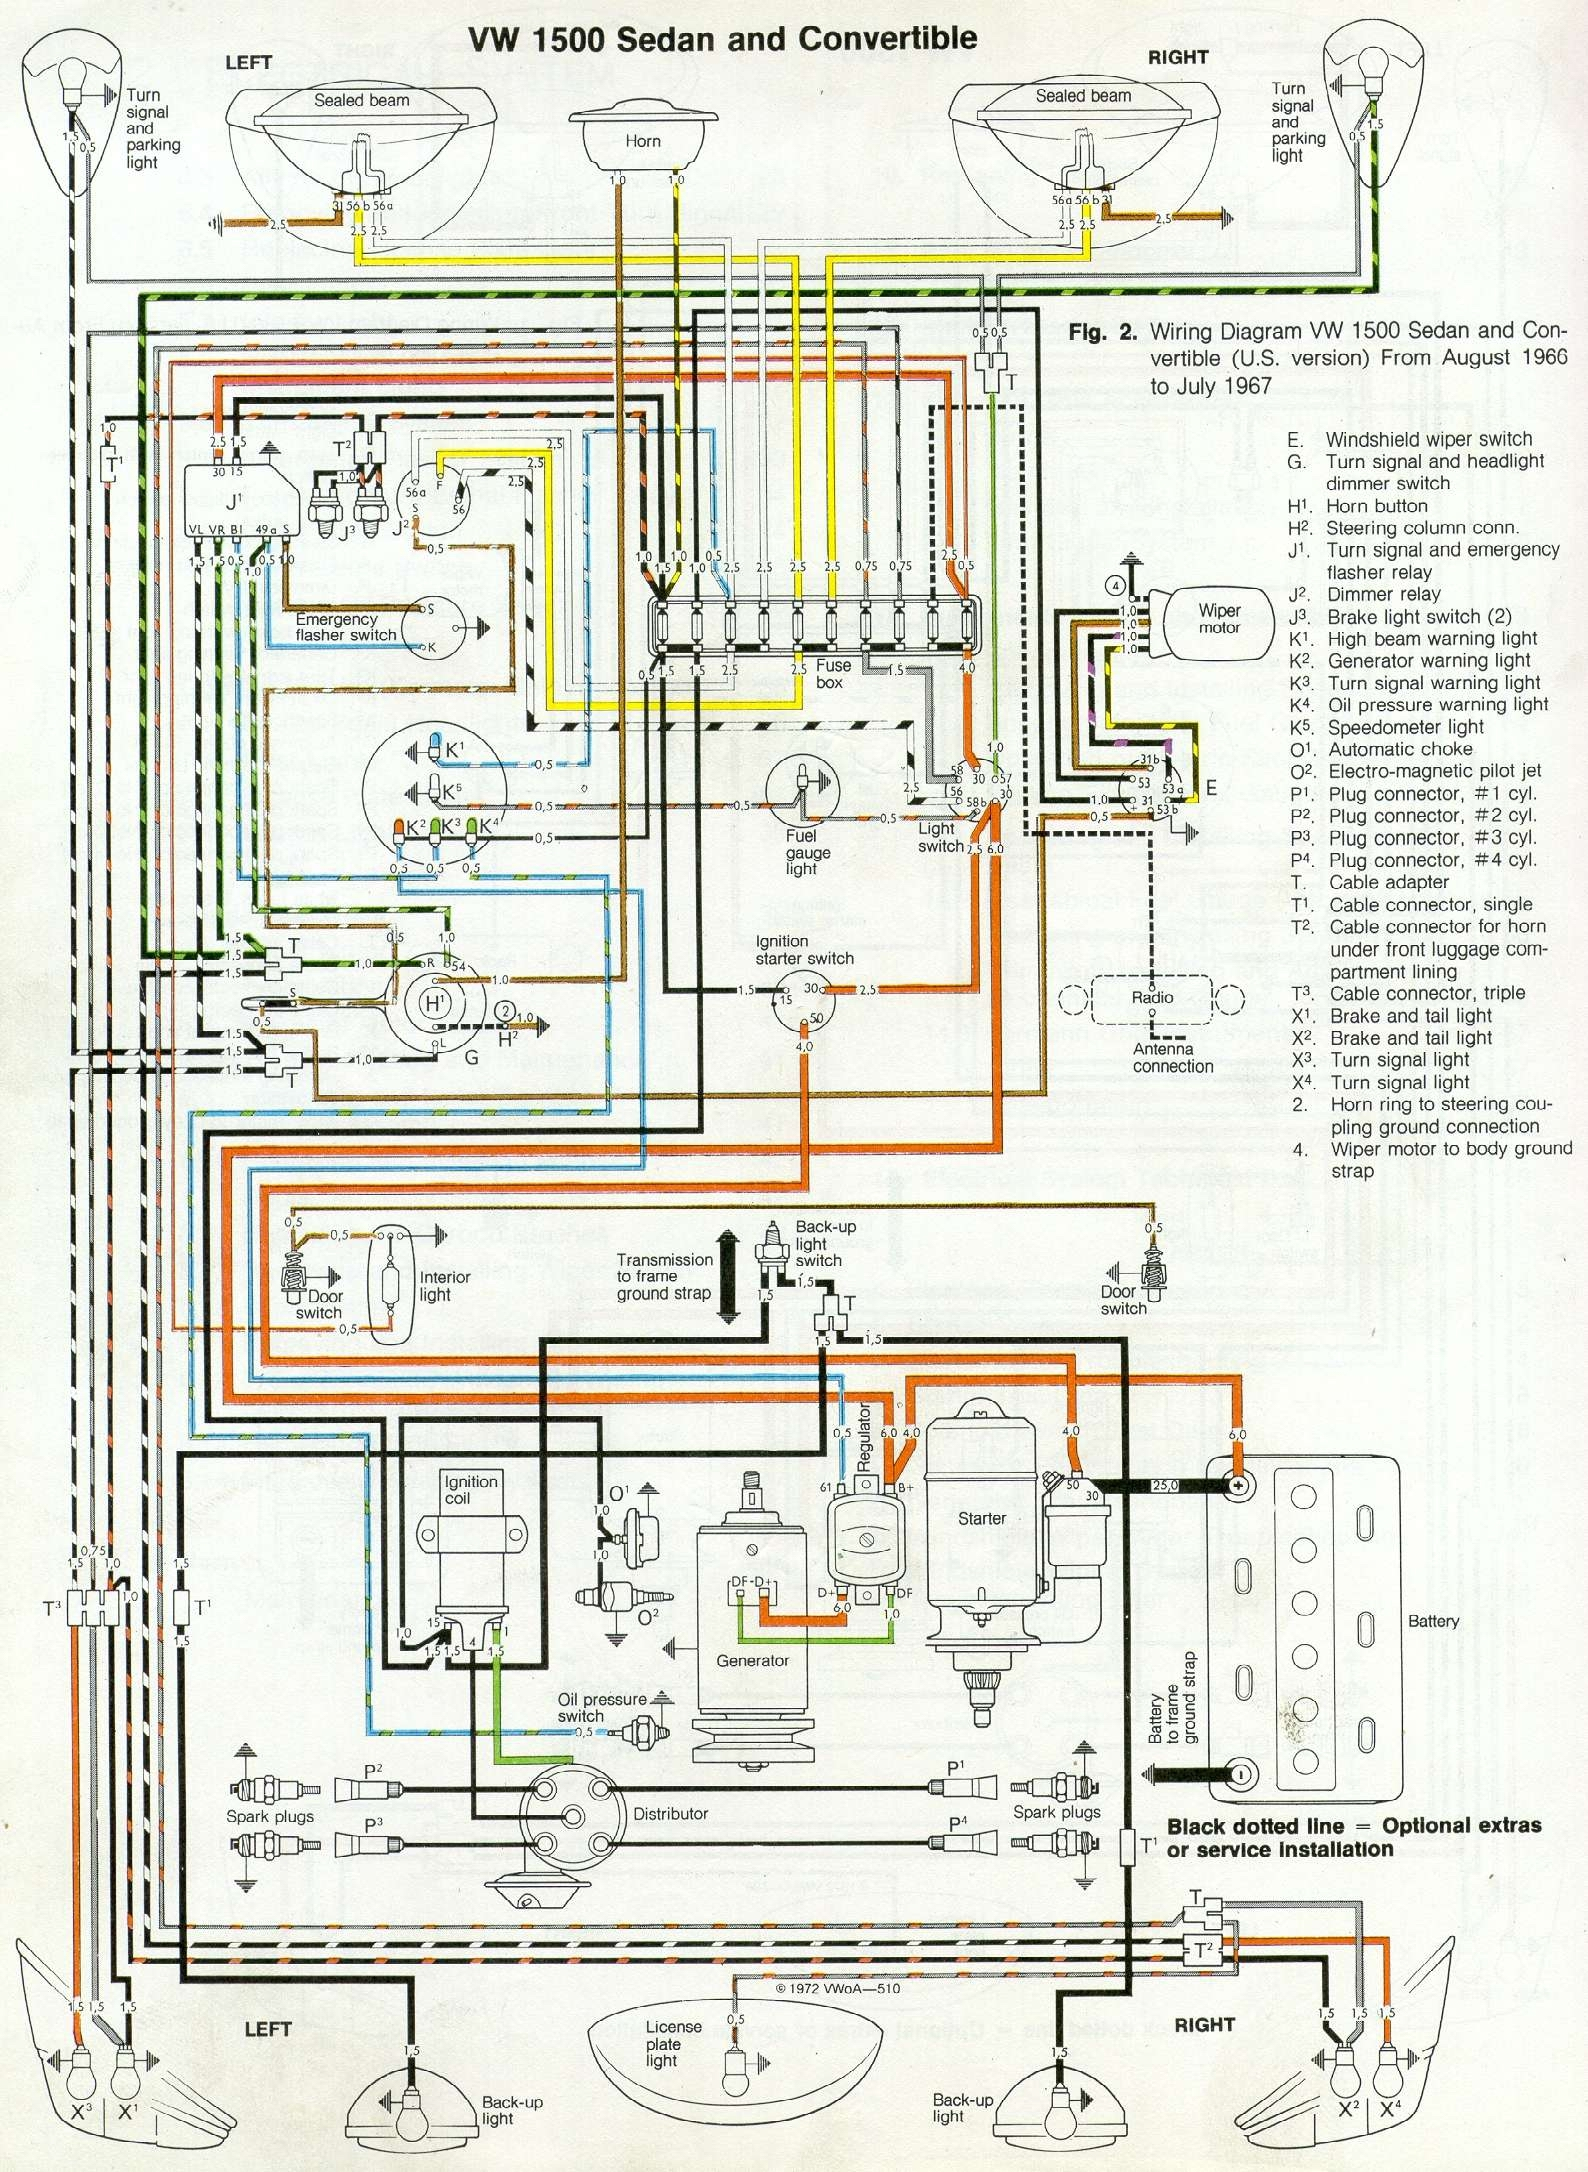 1998 Vw Beetle Fuse Box Wiring Library Diagram 66 And 67 1967 Rh 1967beetle Com 1973